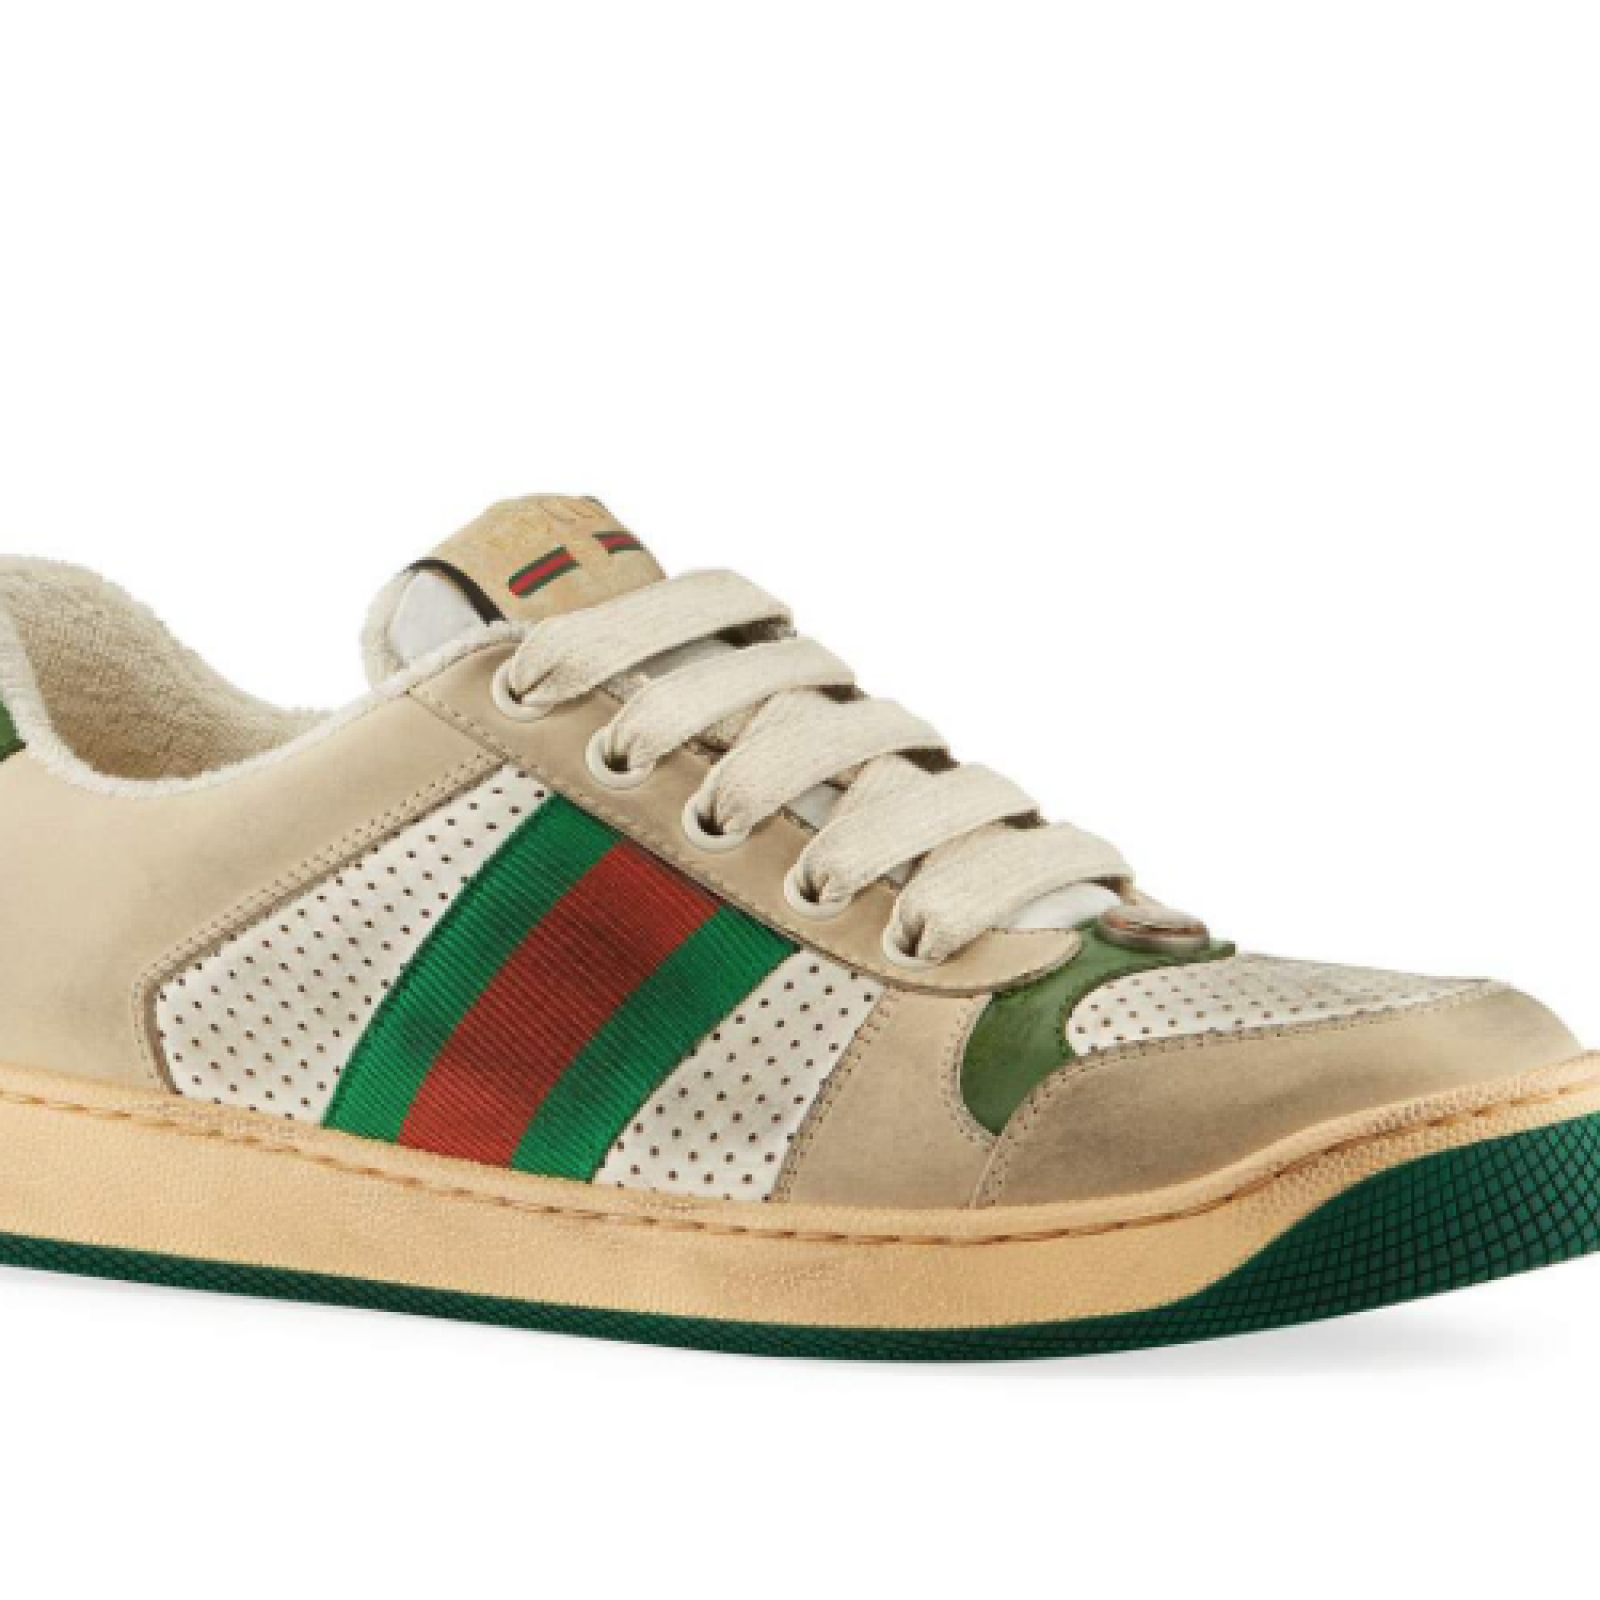 accde3864 'Dirty' Gucci Shoes Sell For $870, Come With Cleaning Instructions